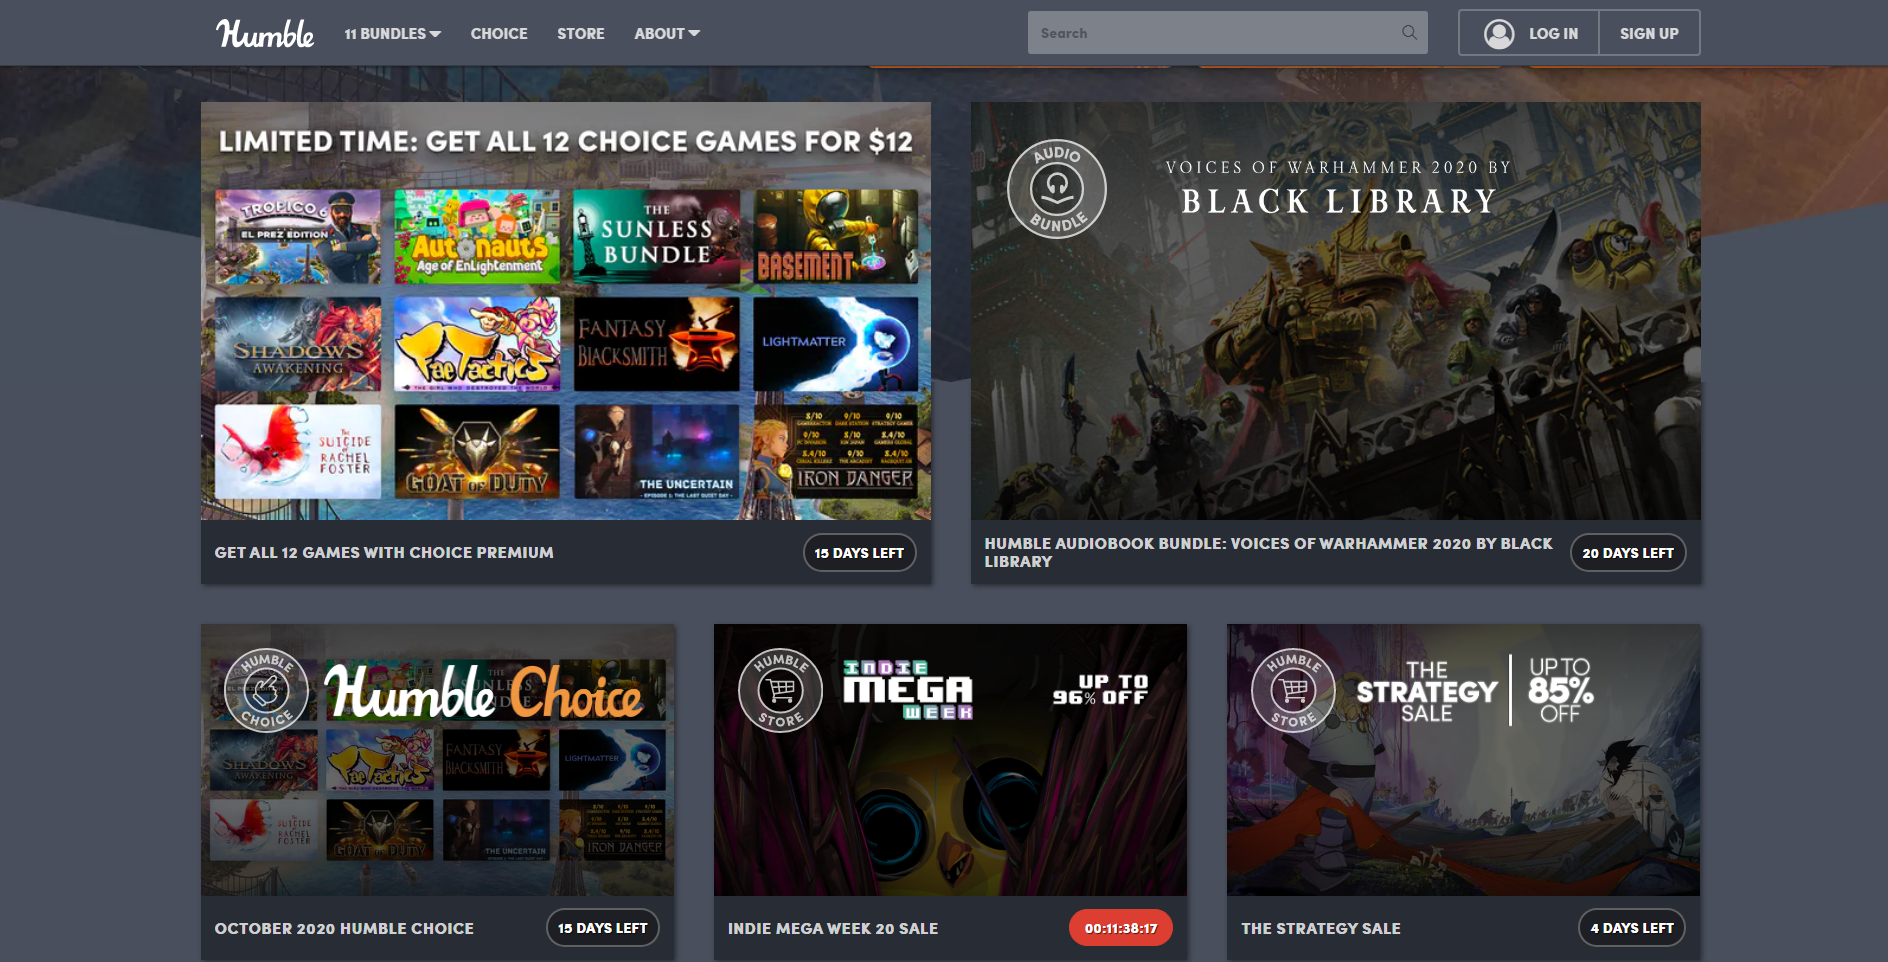 TOP 5 Sites To Buy Games At A Discount - Humble Bundle